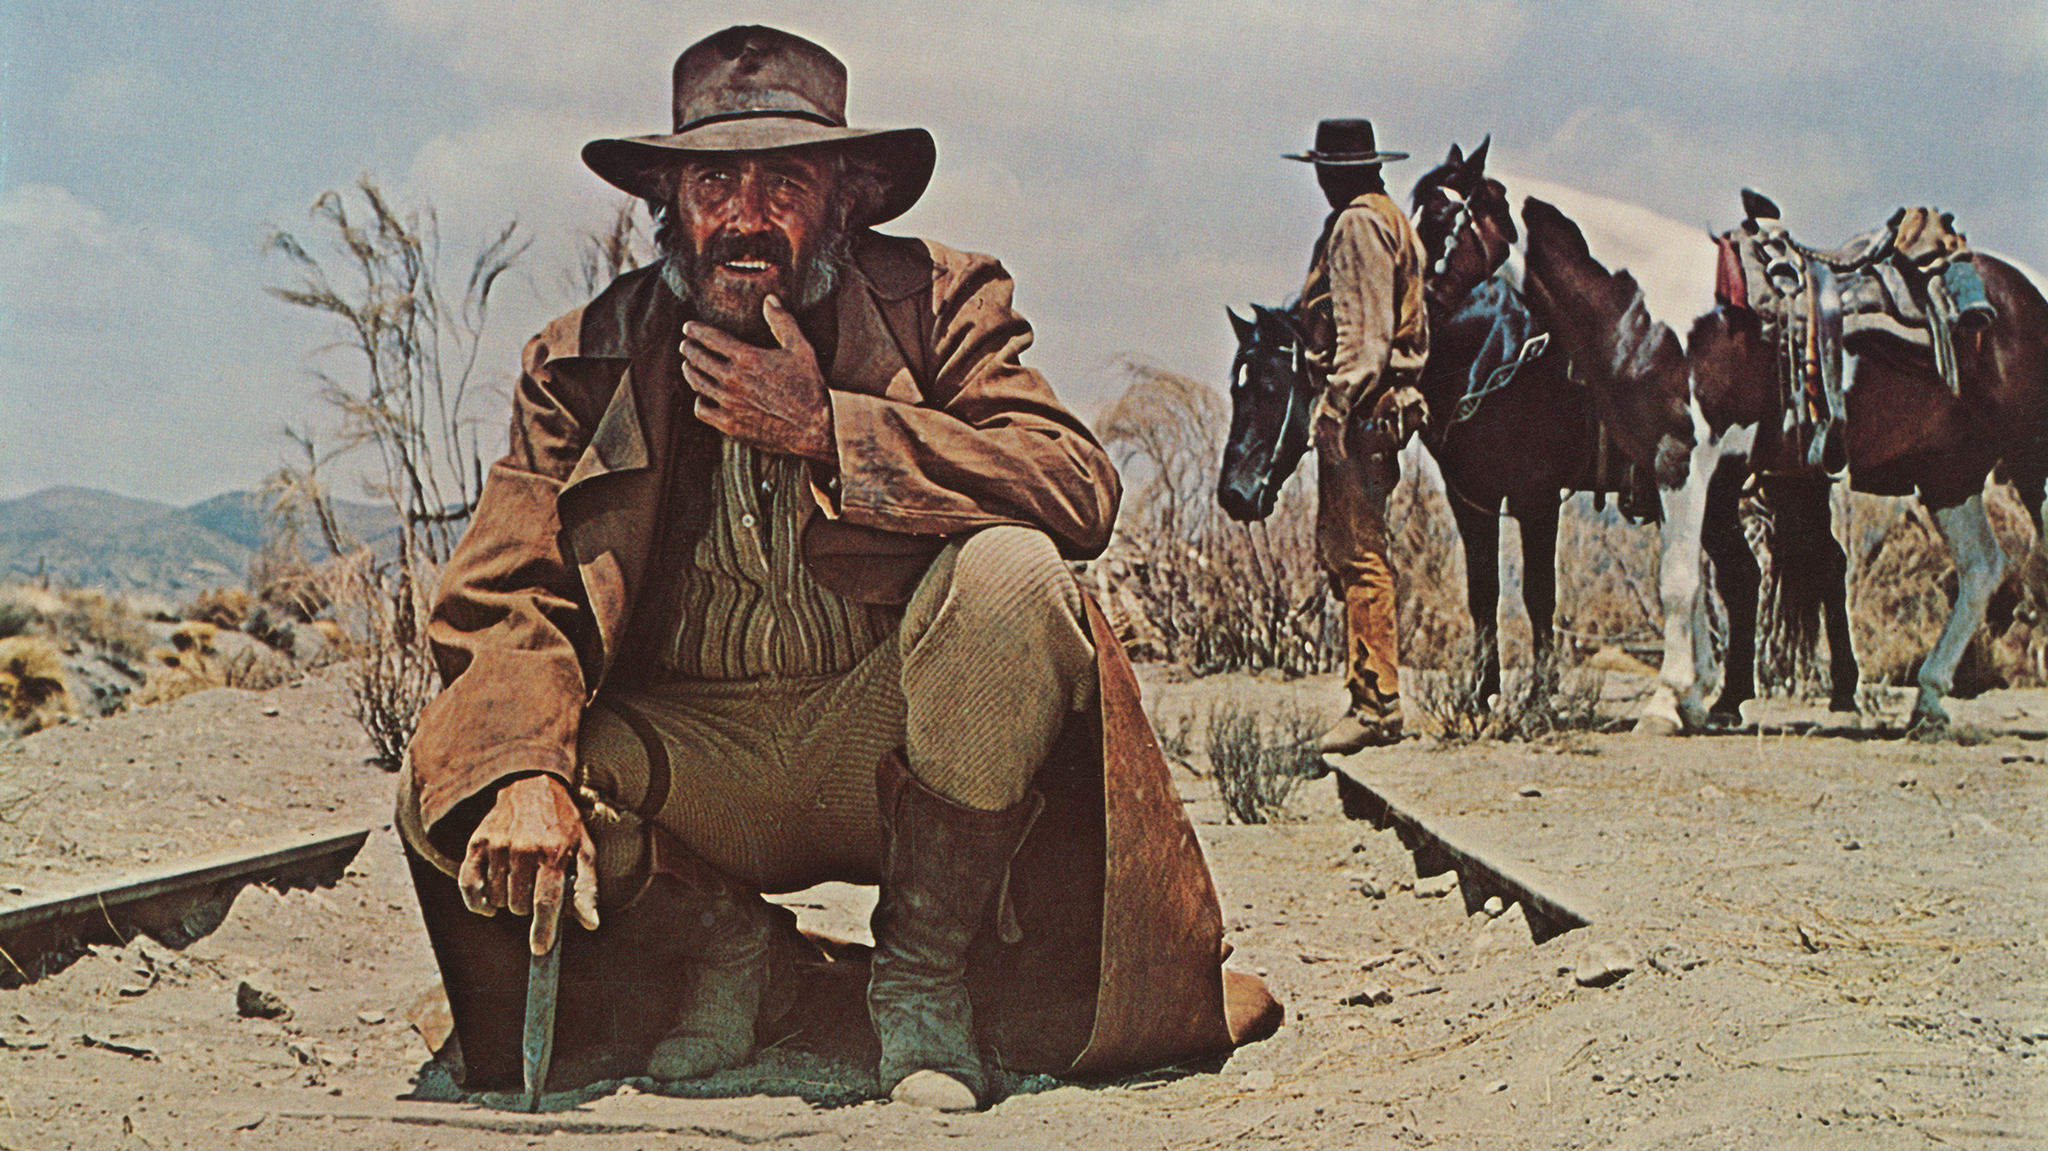 Once Upon a Time in the West, The 100 best movies on Netflix